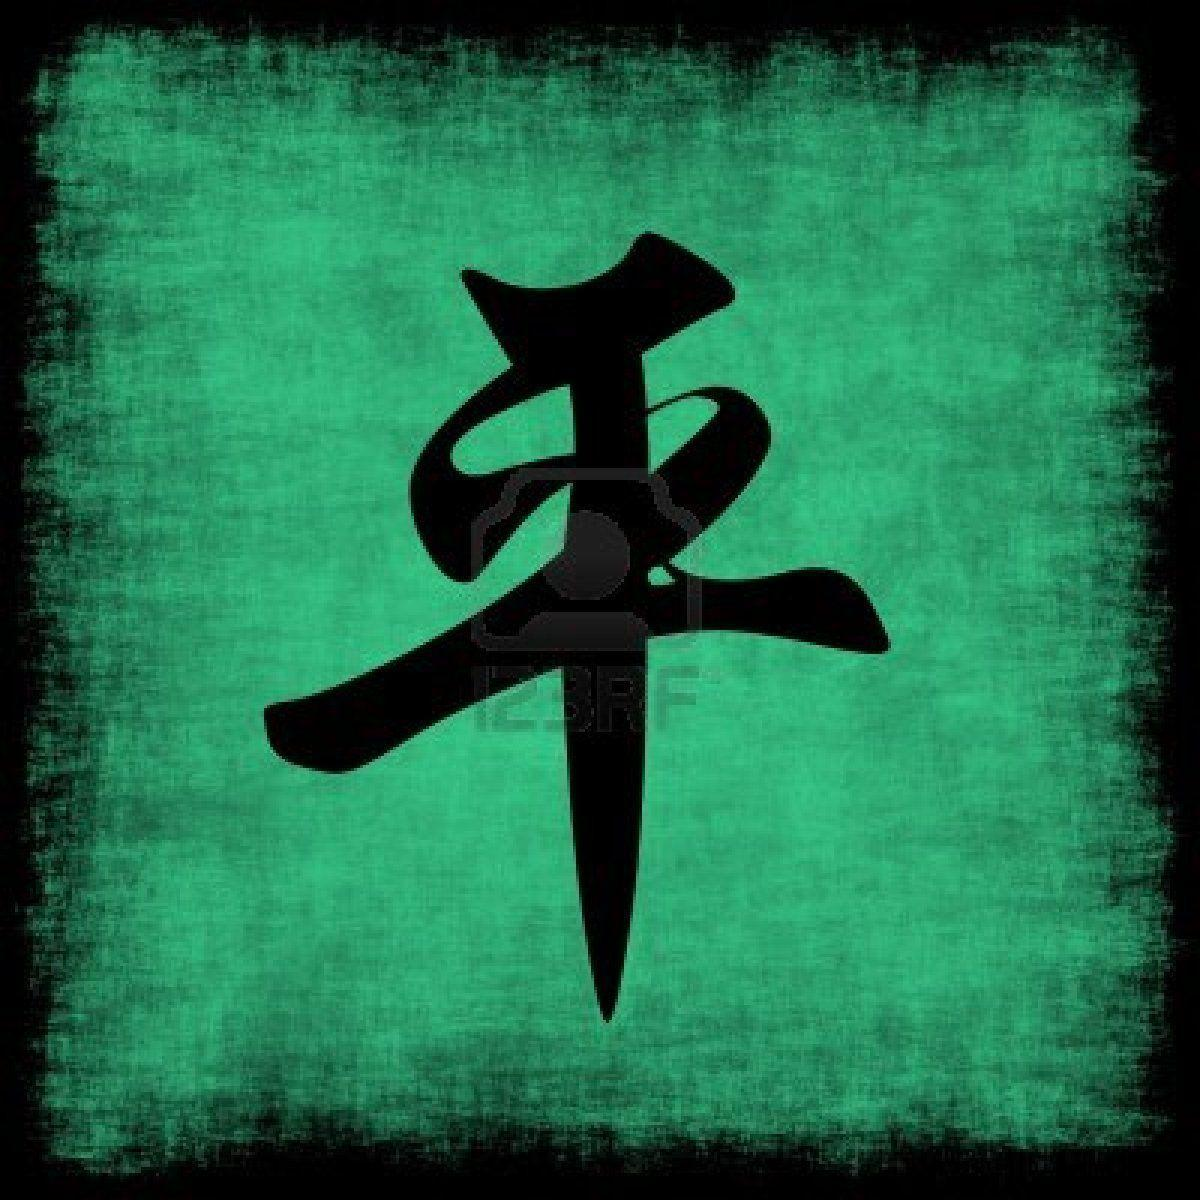 1200x1200 Chinese Symbols Wallpapers